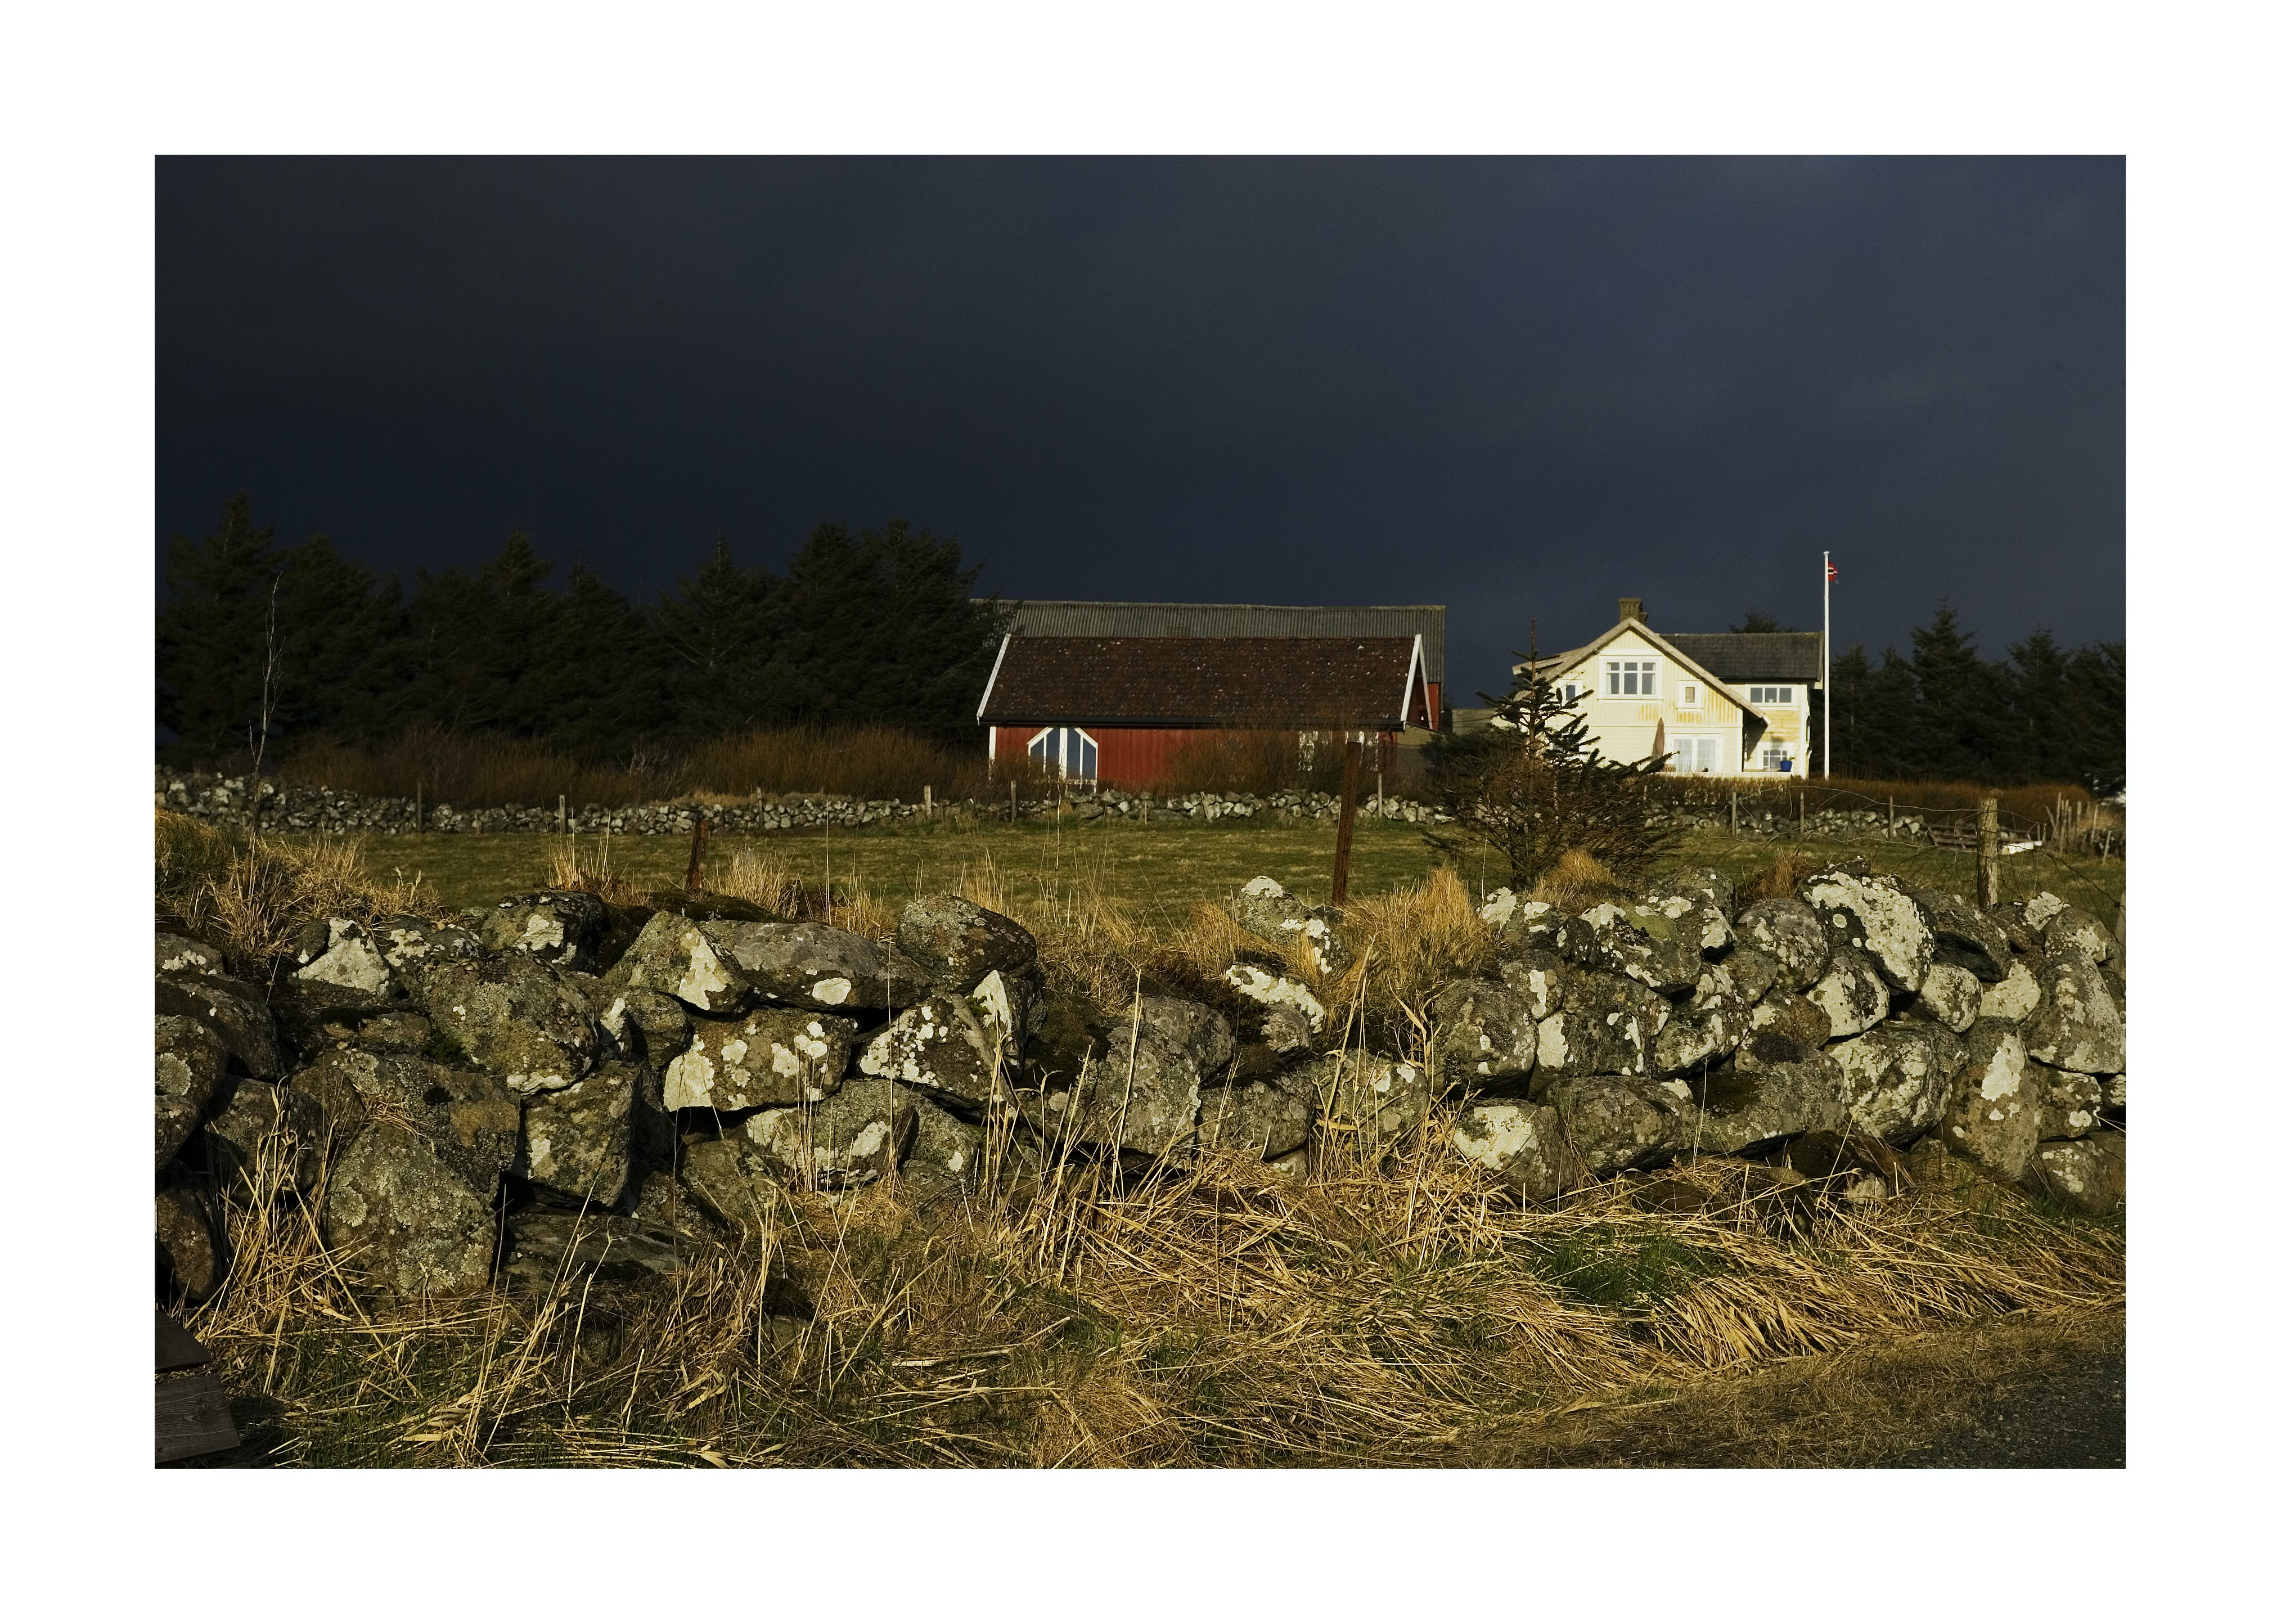 Free stock photo of dramatic sky, stonewalls, wooden house